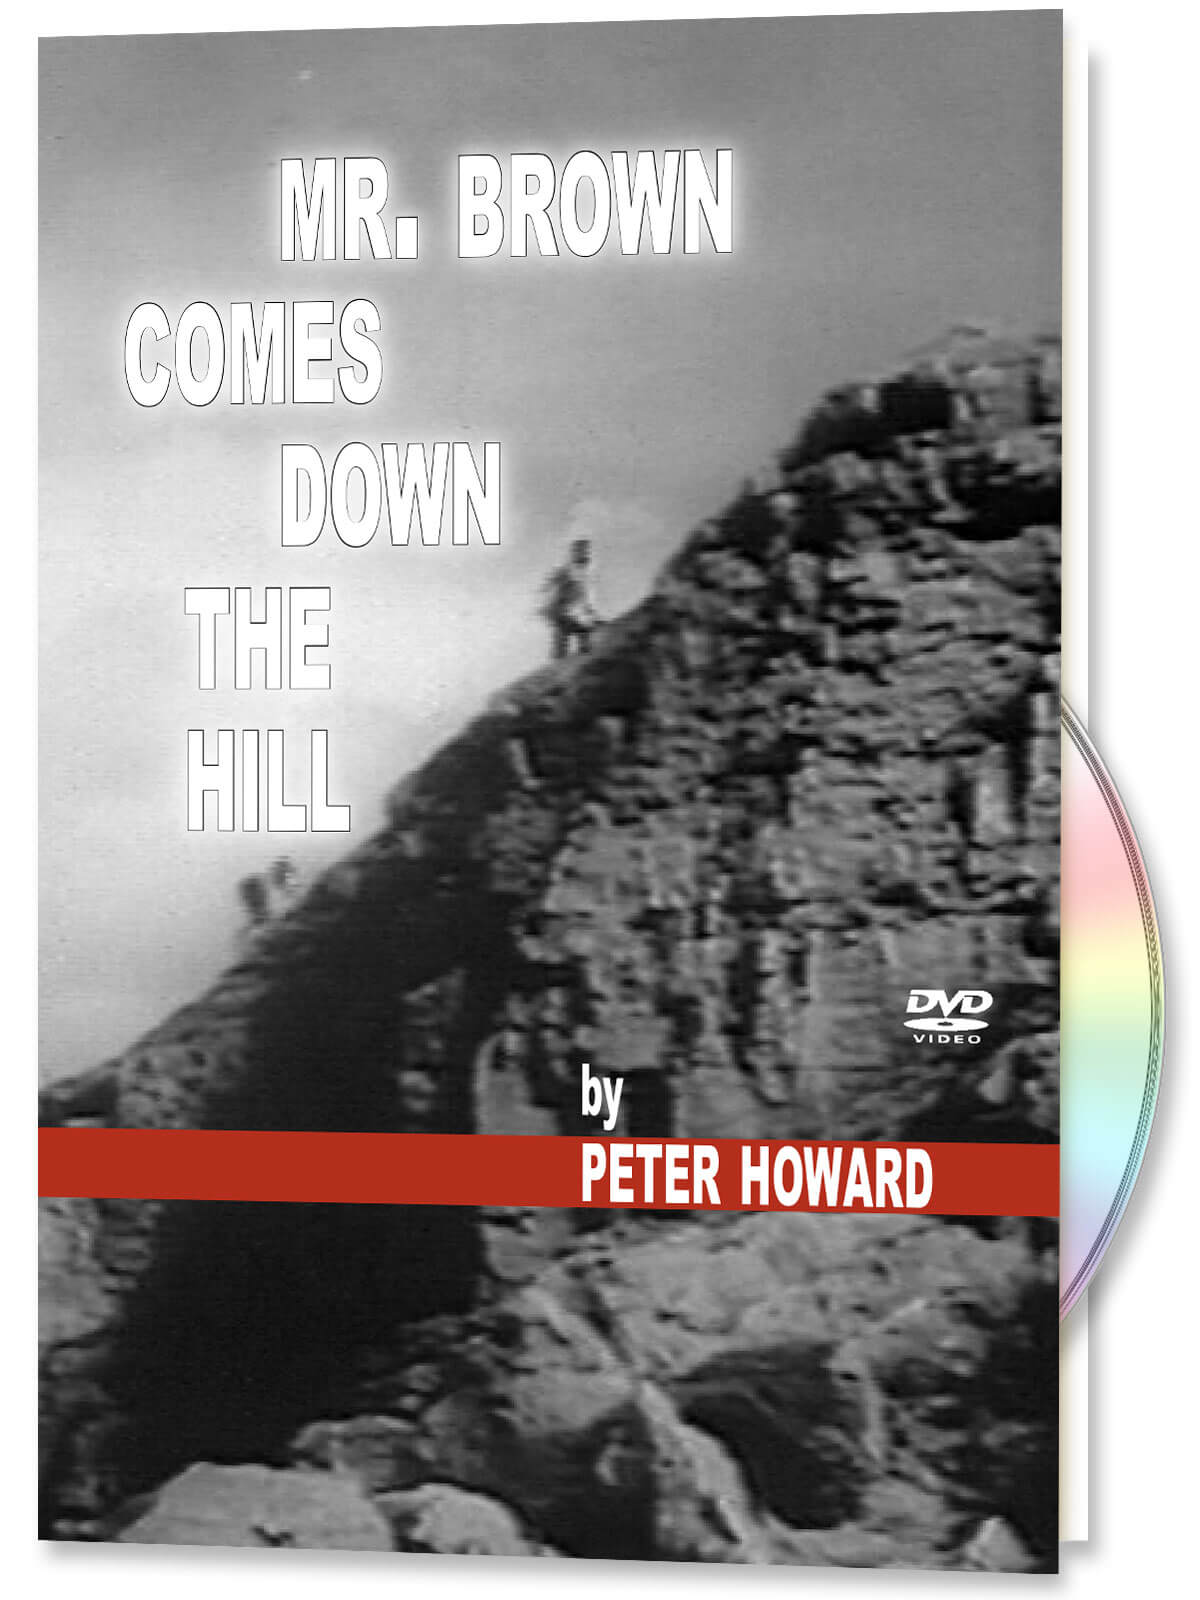 Mr. Brown comes down the Hill